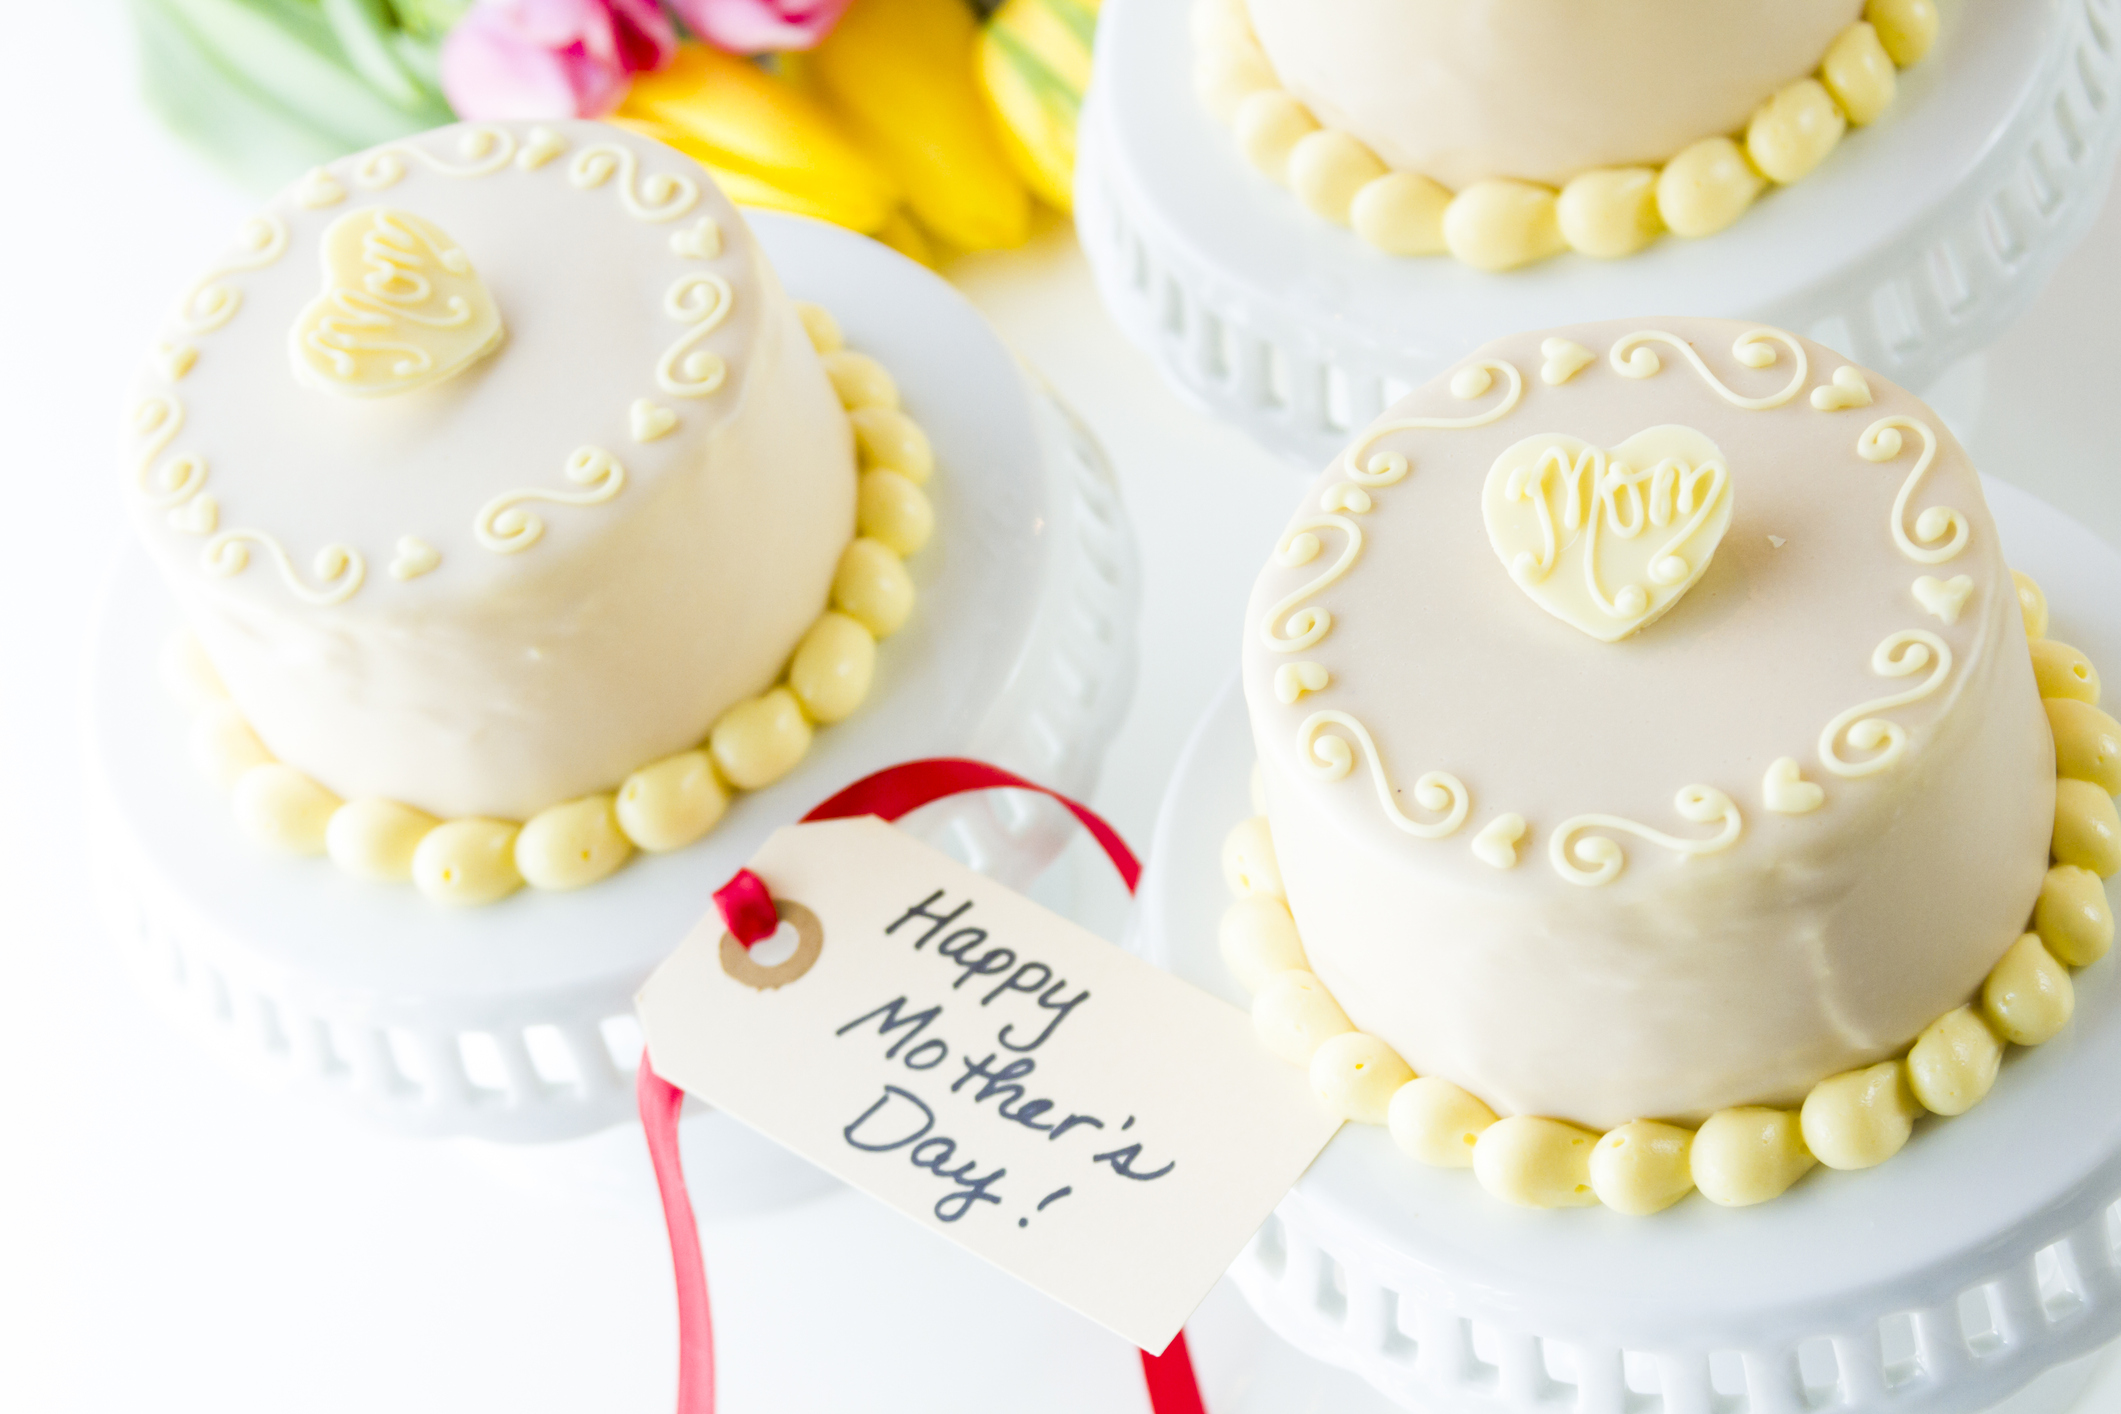 5 Love-filled Cake Designs to make this Mother's Day Special for your Mother